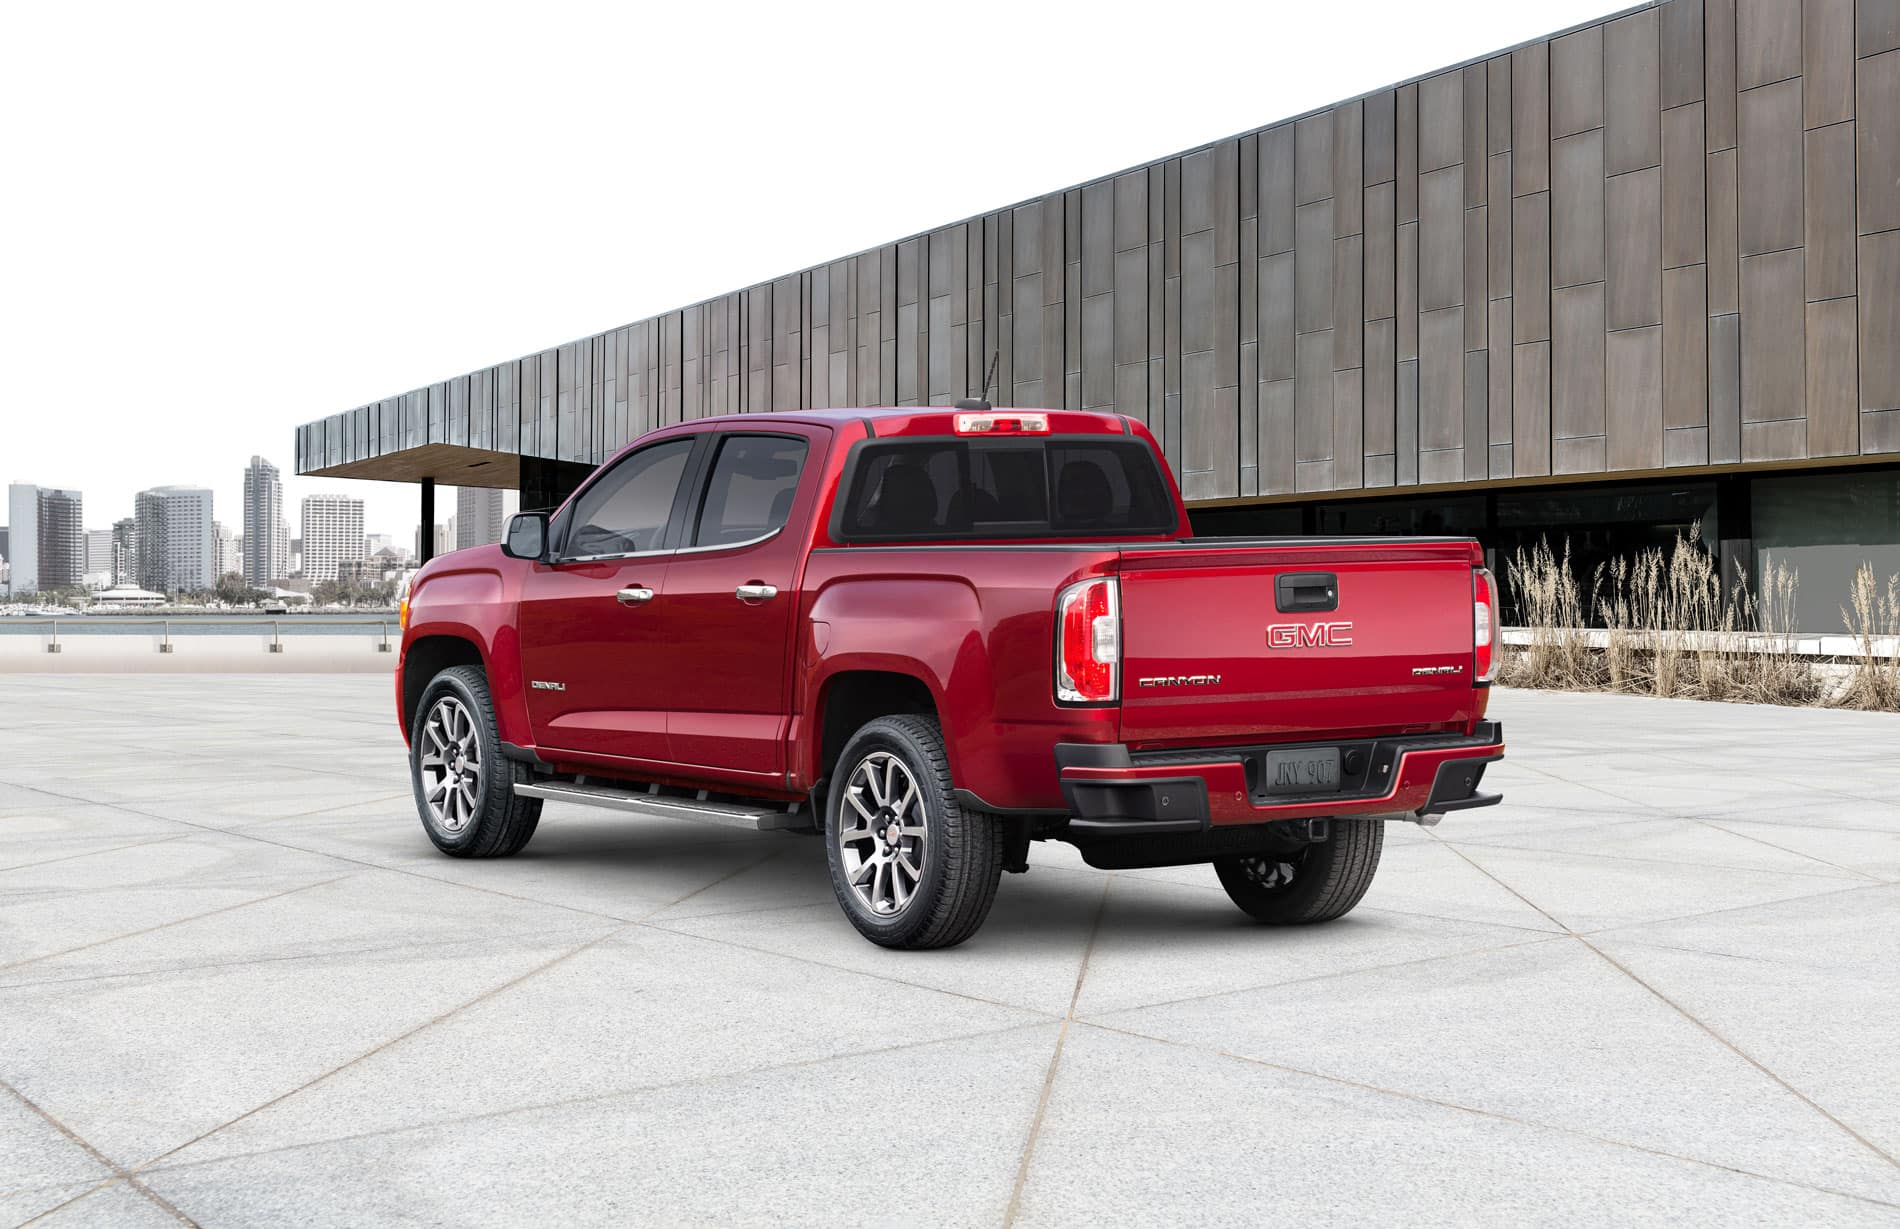 Chevy Colorado Vs Gmc Canyon Cross Town Sibling Showdown In A Wiring The 2019 Is Pricier Than Virtually Every Trim With Minimal Upgrades Except On One Denali This Model Give Luxury